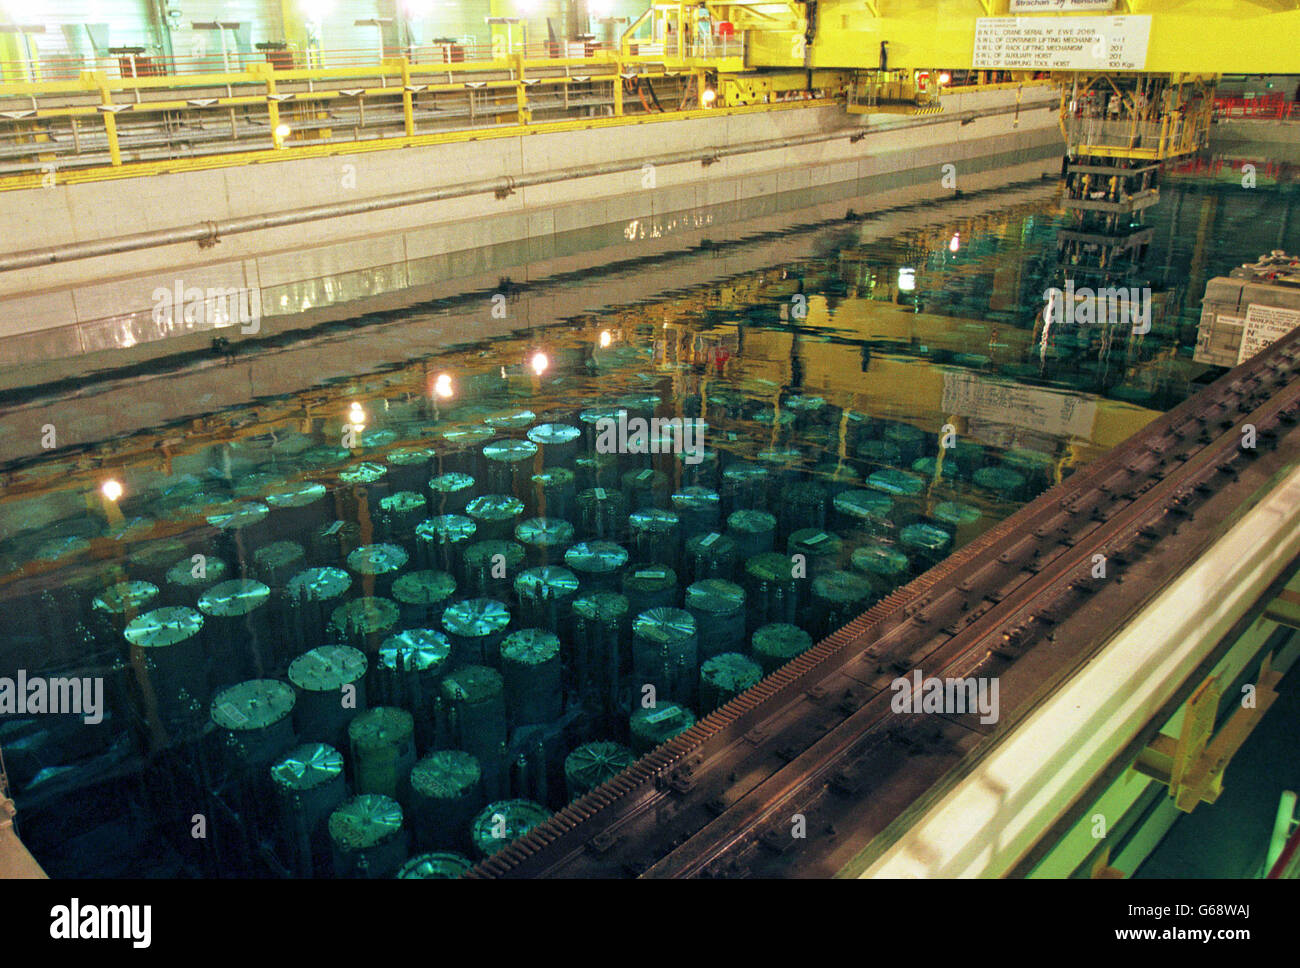 At the Thermal Oxide Reprocessing Plant (THORP) at Sellafield, the storage pond contains rows of huge 'bottles' - Stock Image